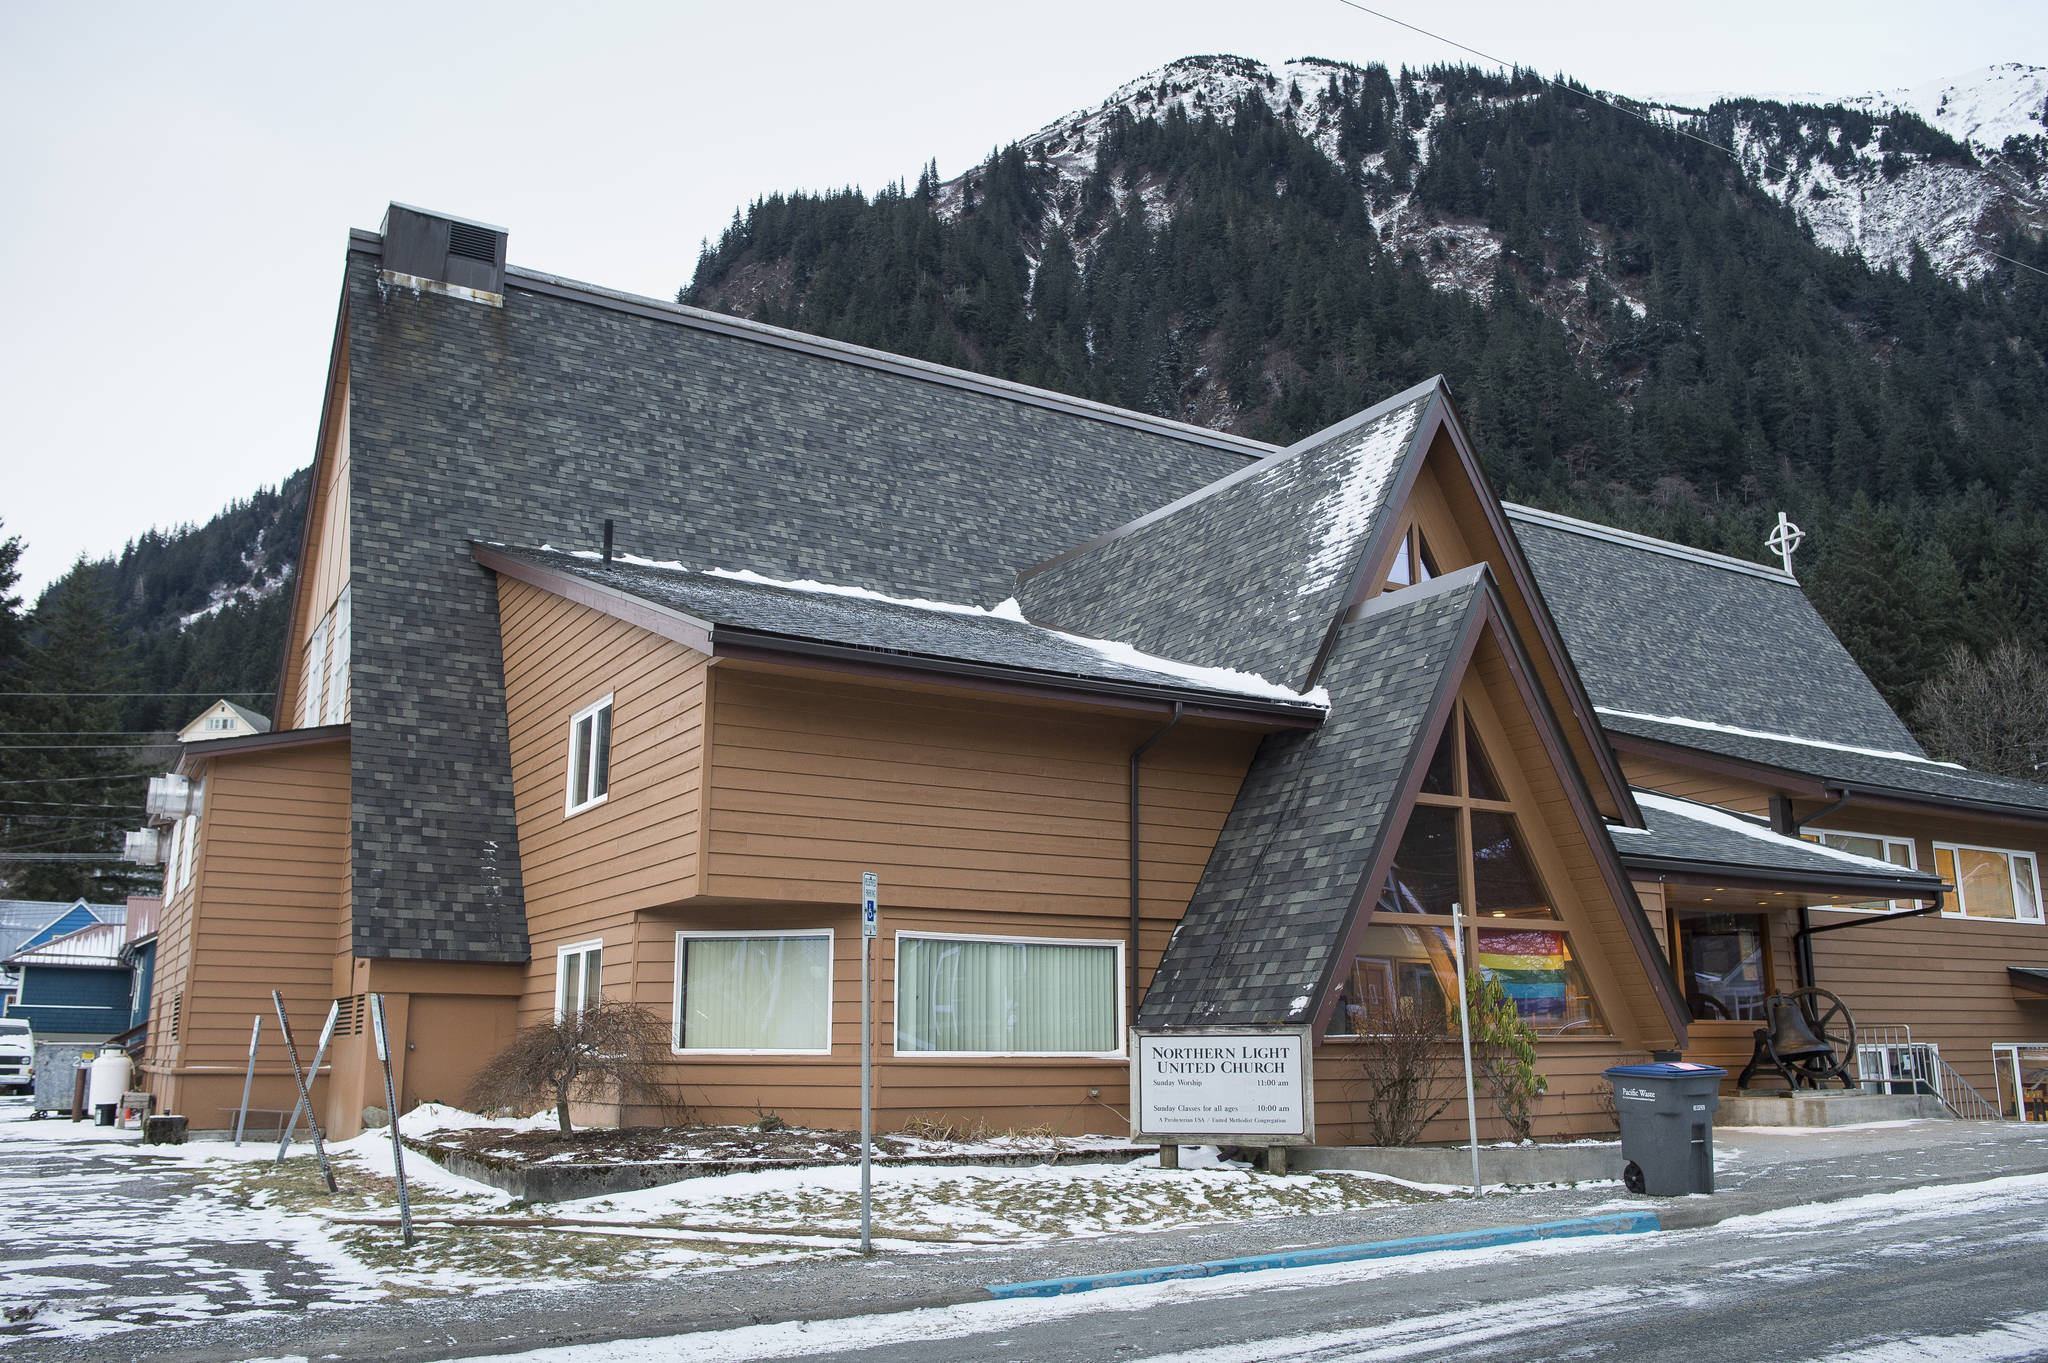 Juneau church gets fundraising boost from storytellers